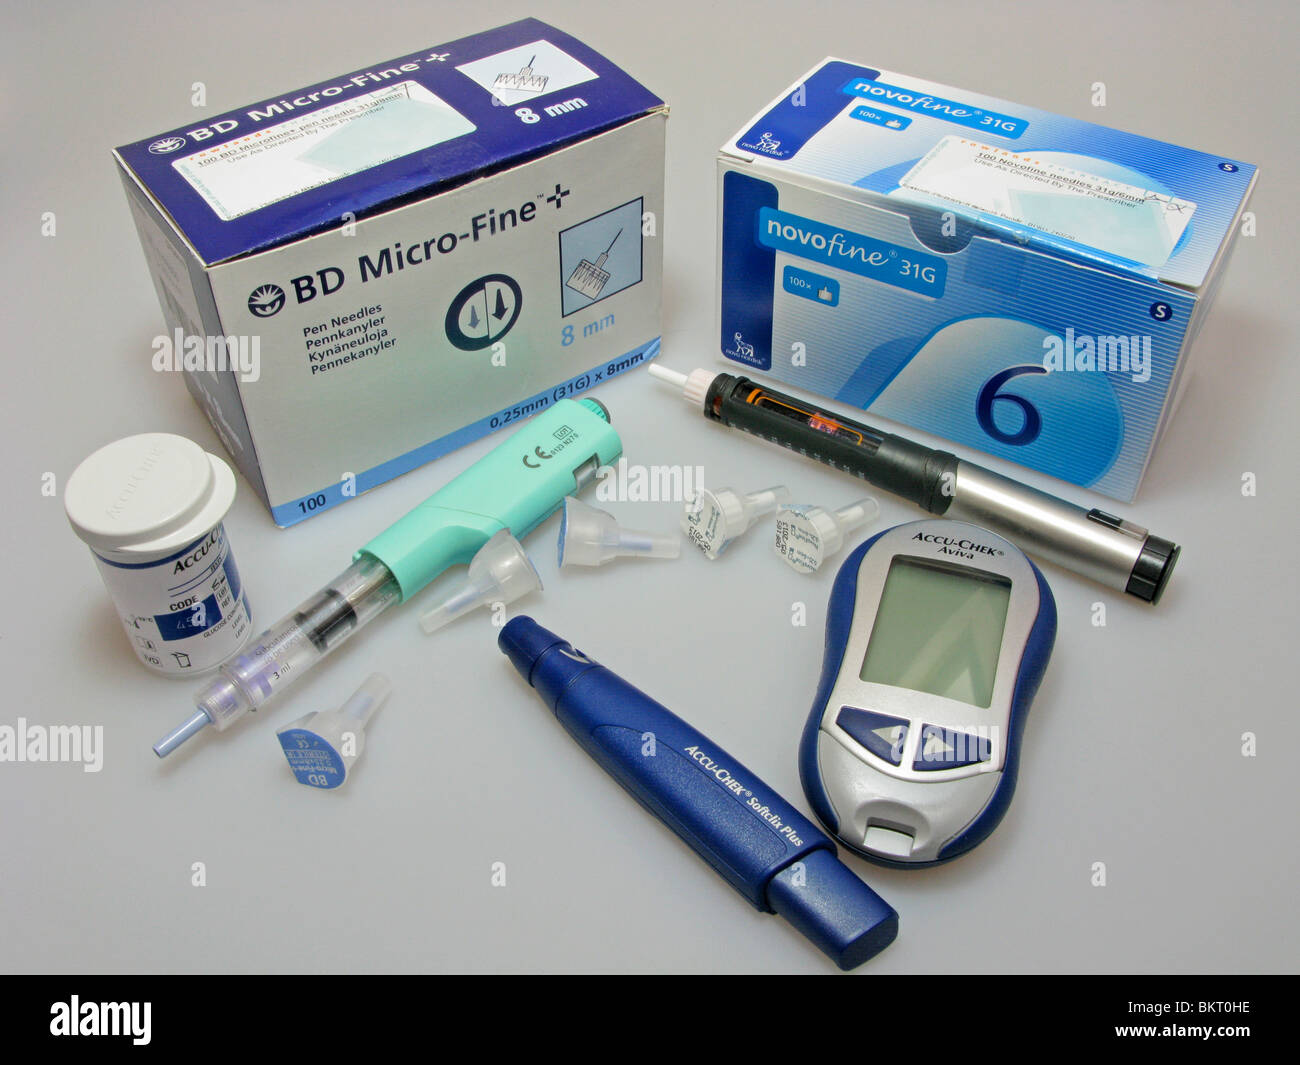 blood sugars (glucose) monitor & injection items needed for a someone suffering from diabetes - Stock Image